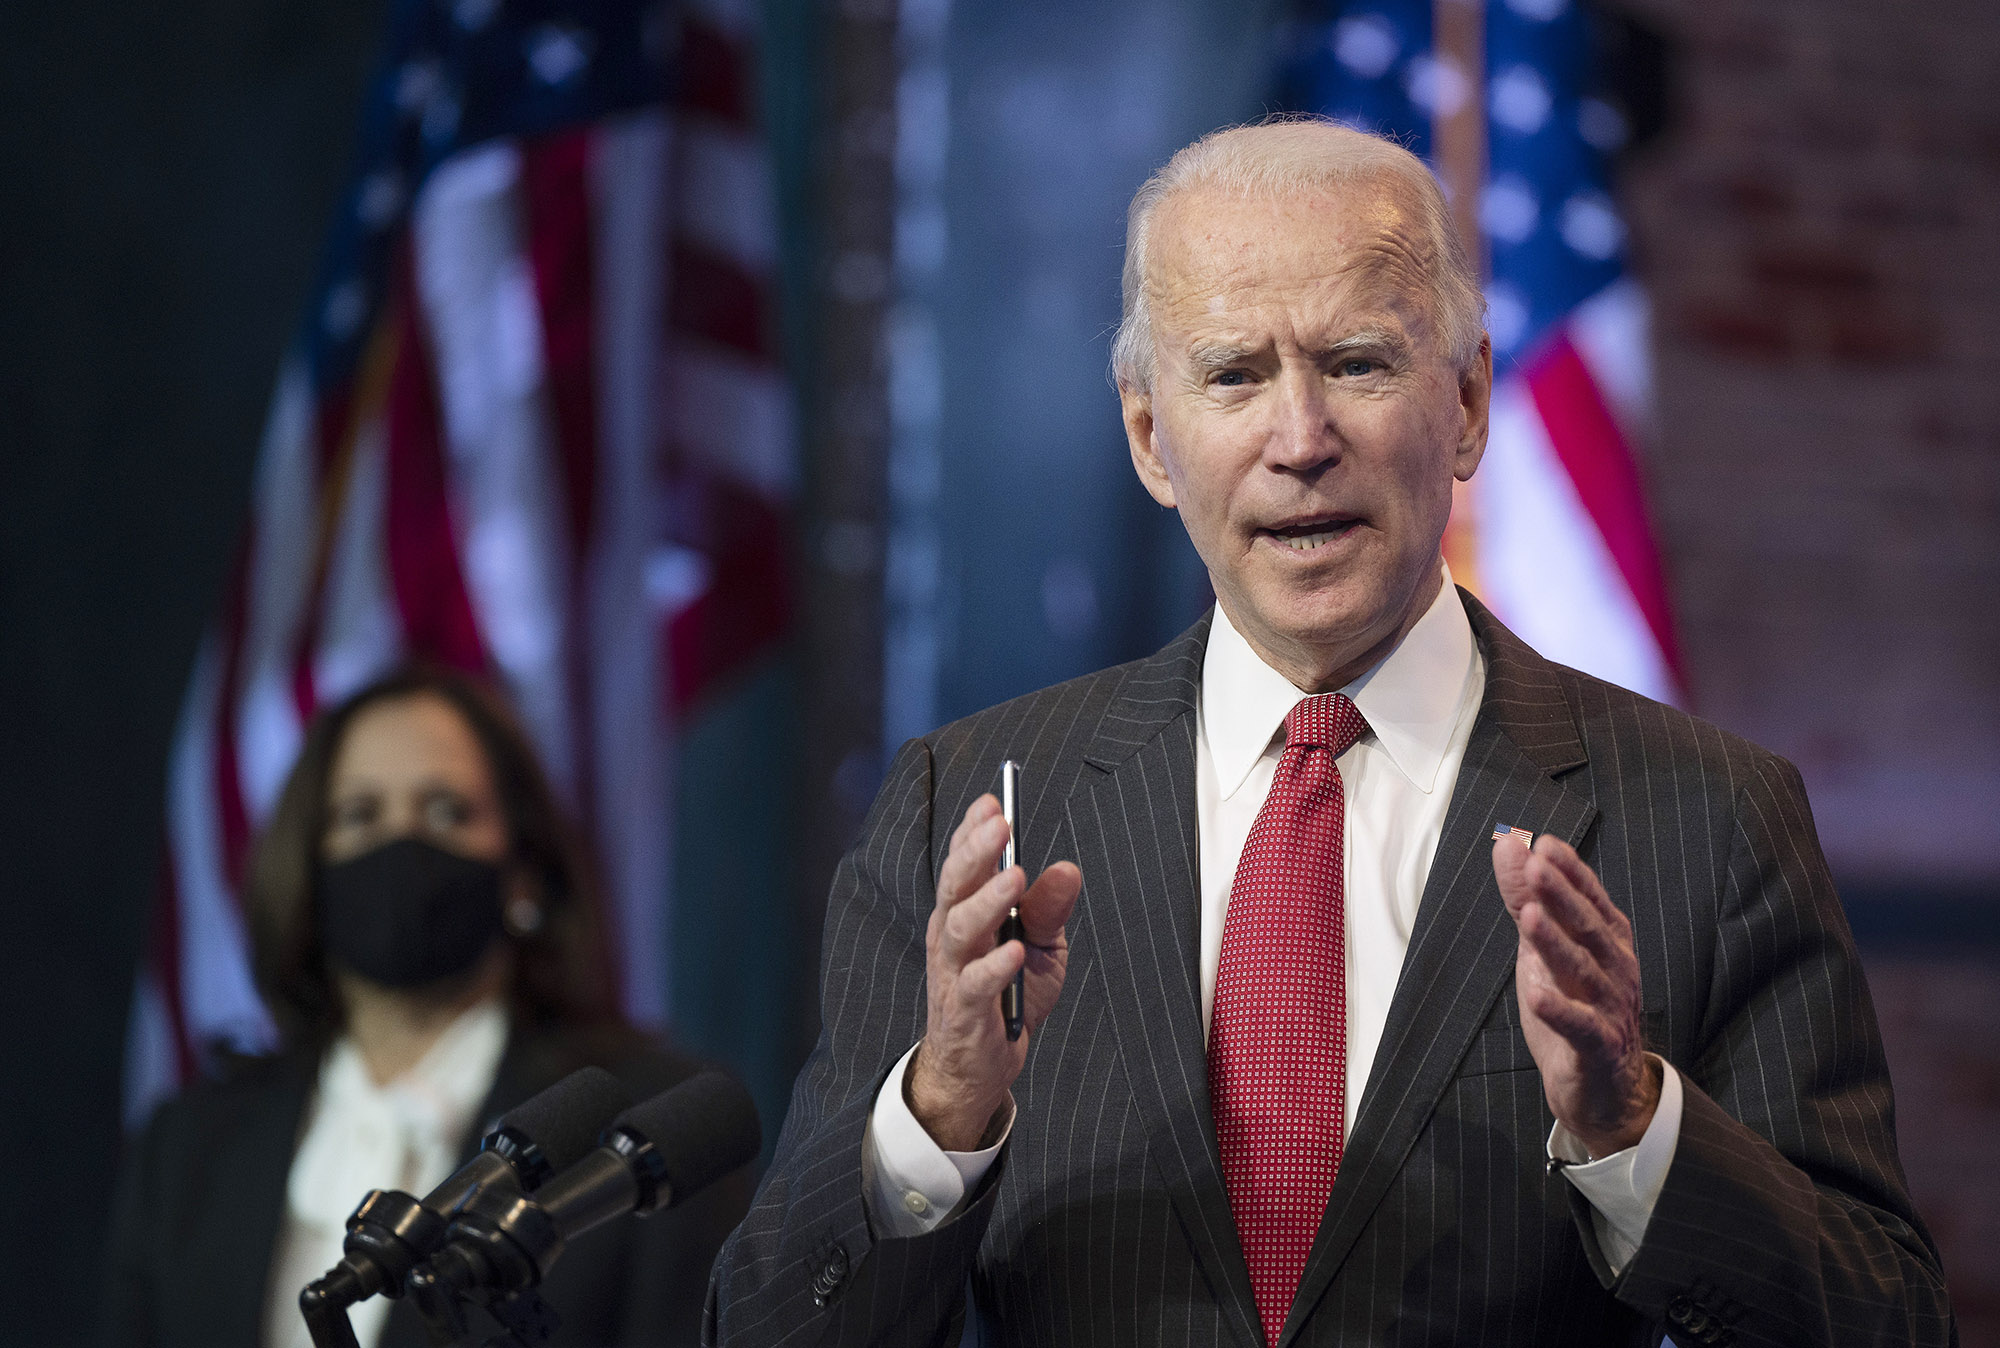 US President-elect Joe Biden speaks after a meeting with governors in Wilmington, Delaware, on November 19.